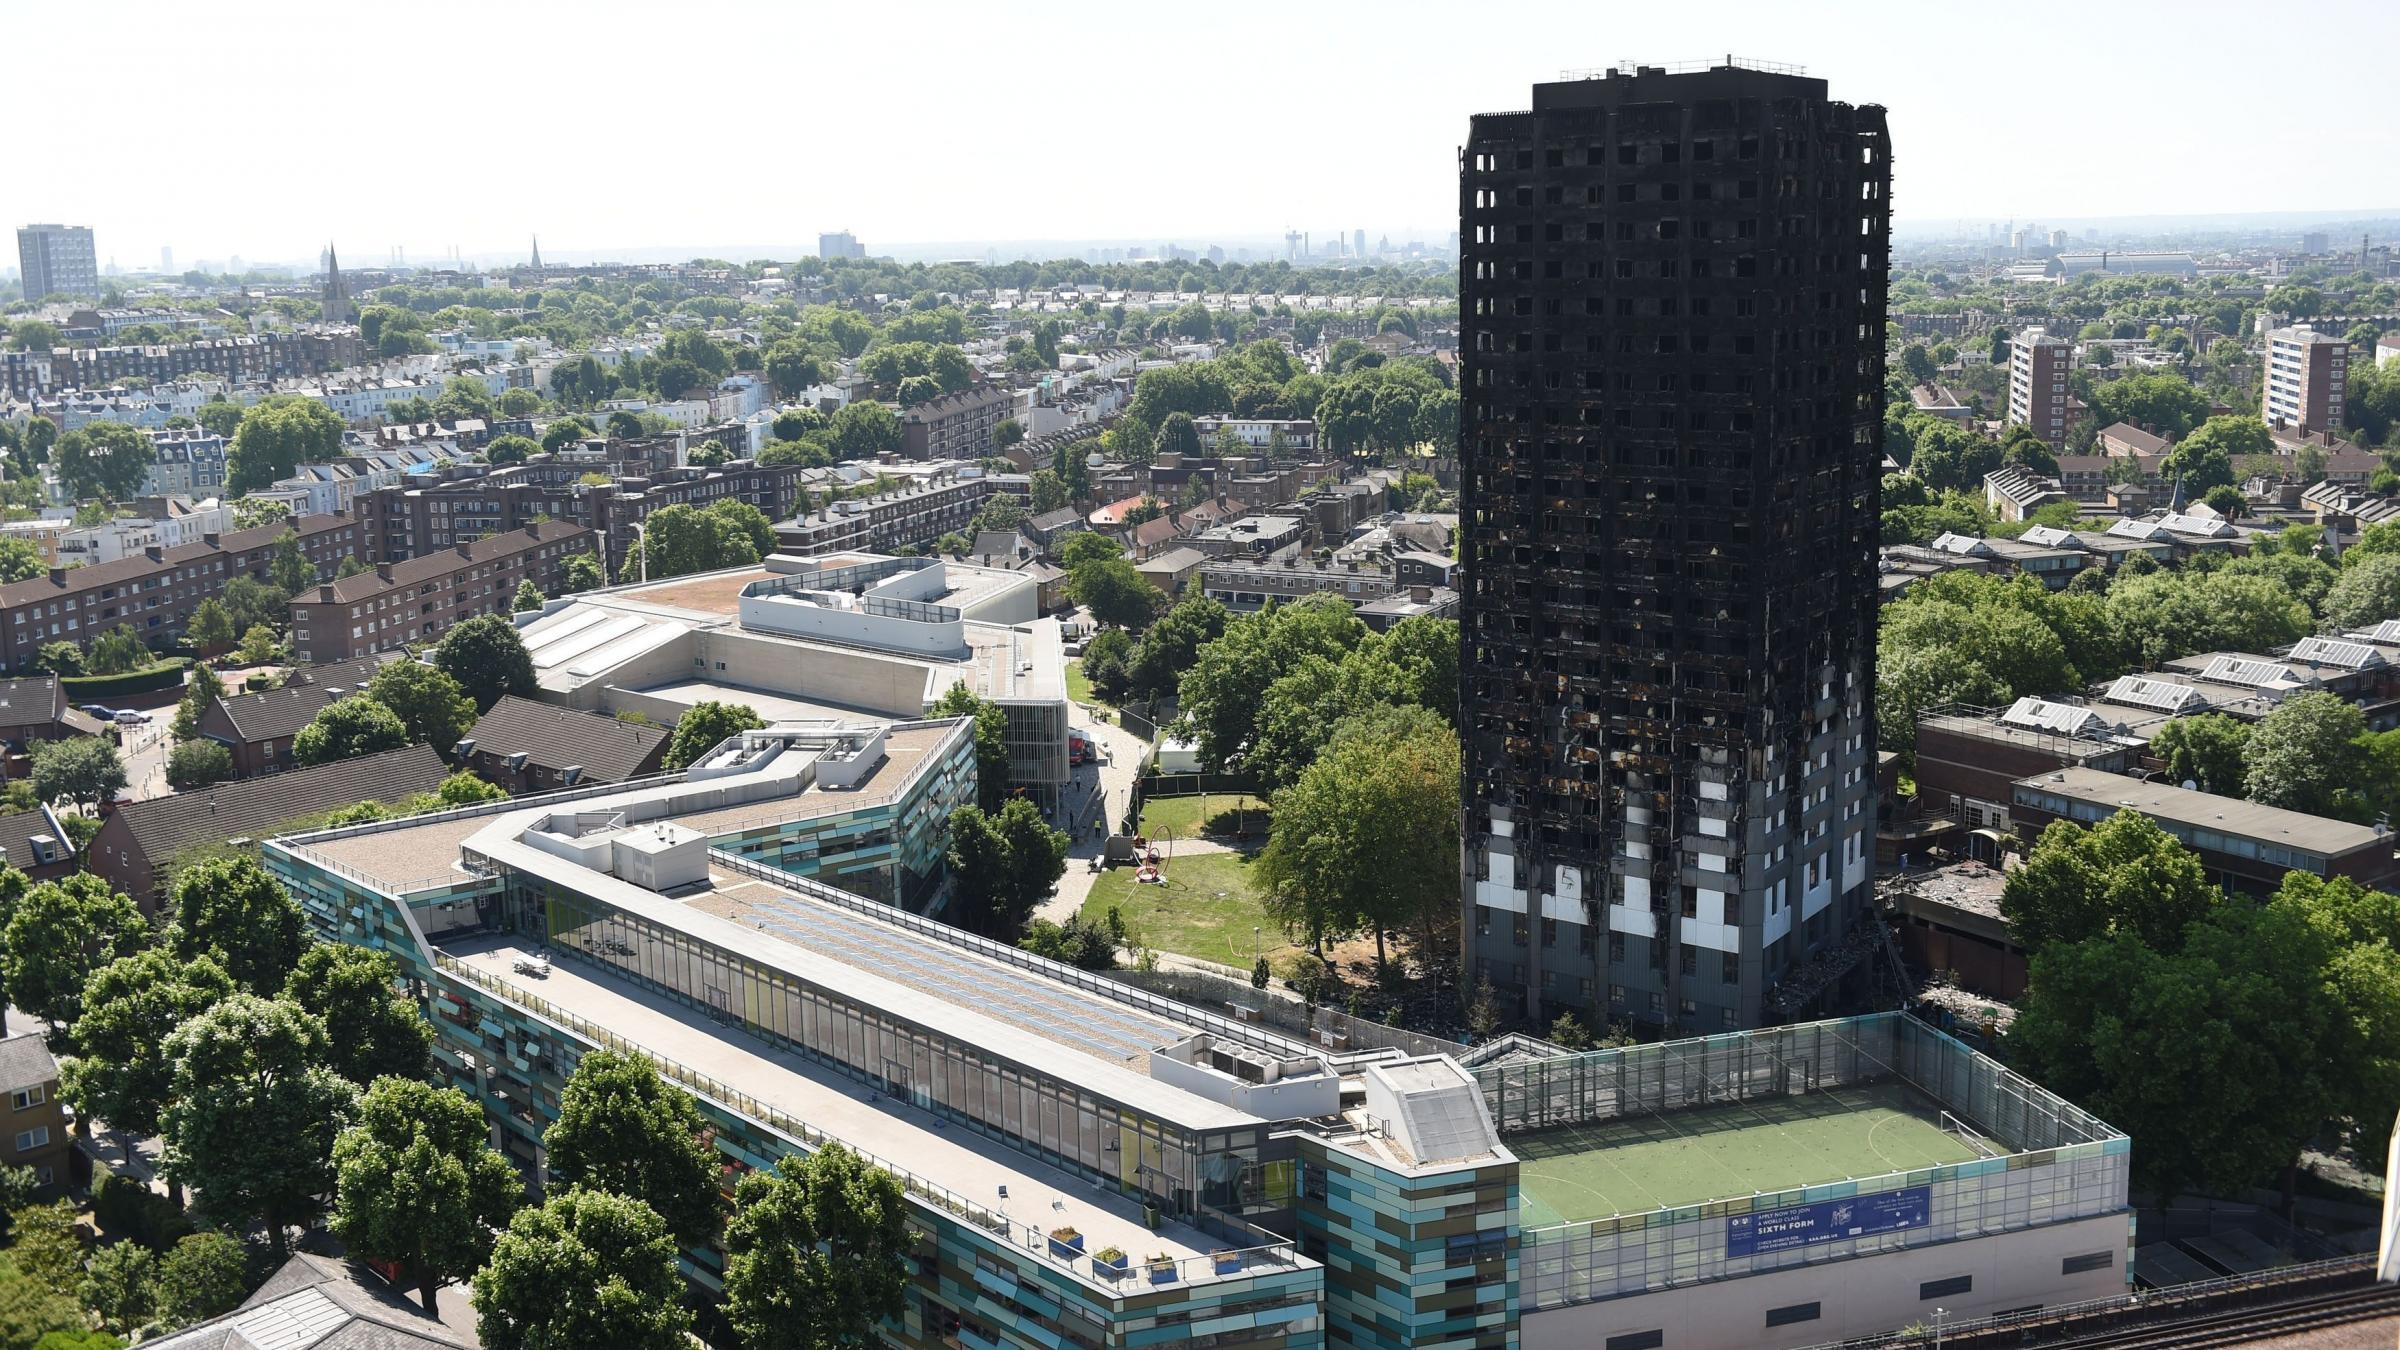 Fears of resident in tower block refurbished by Grenfell cladding contractor